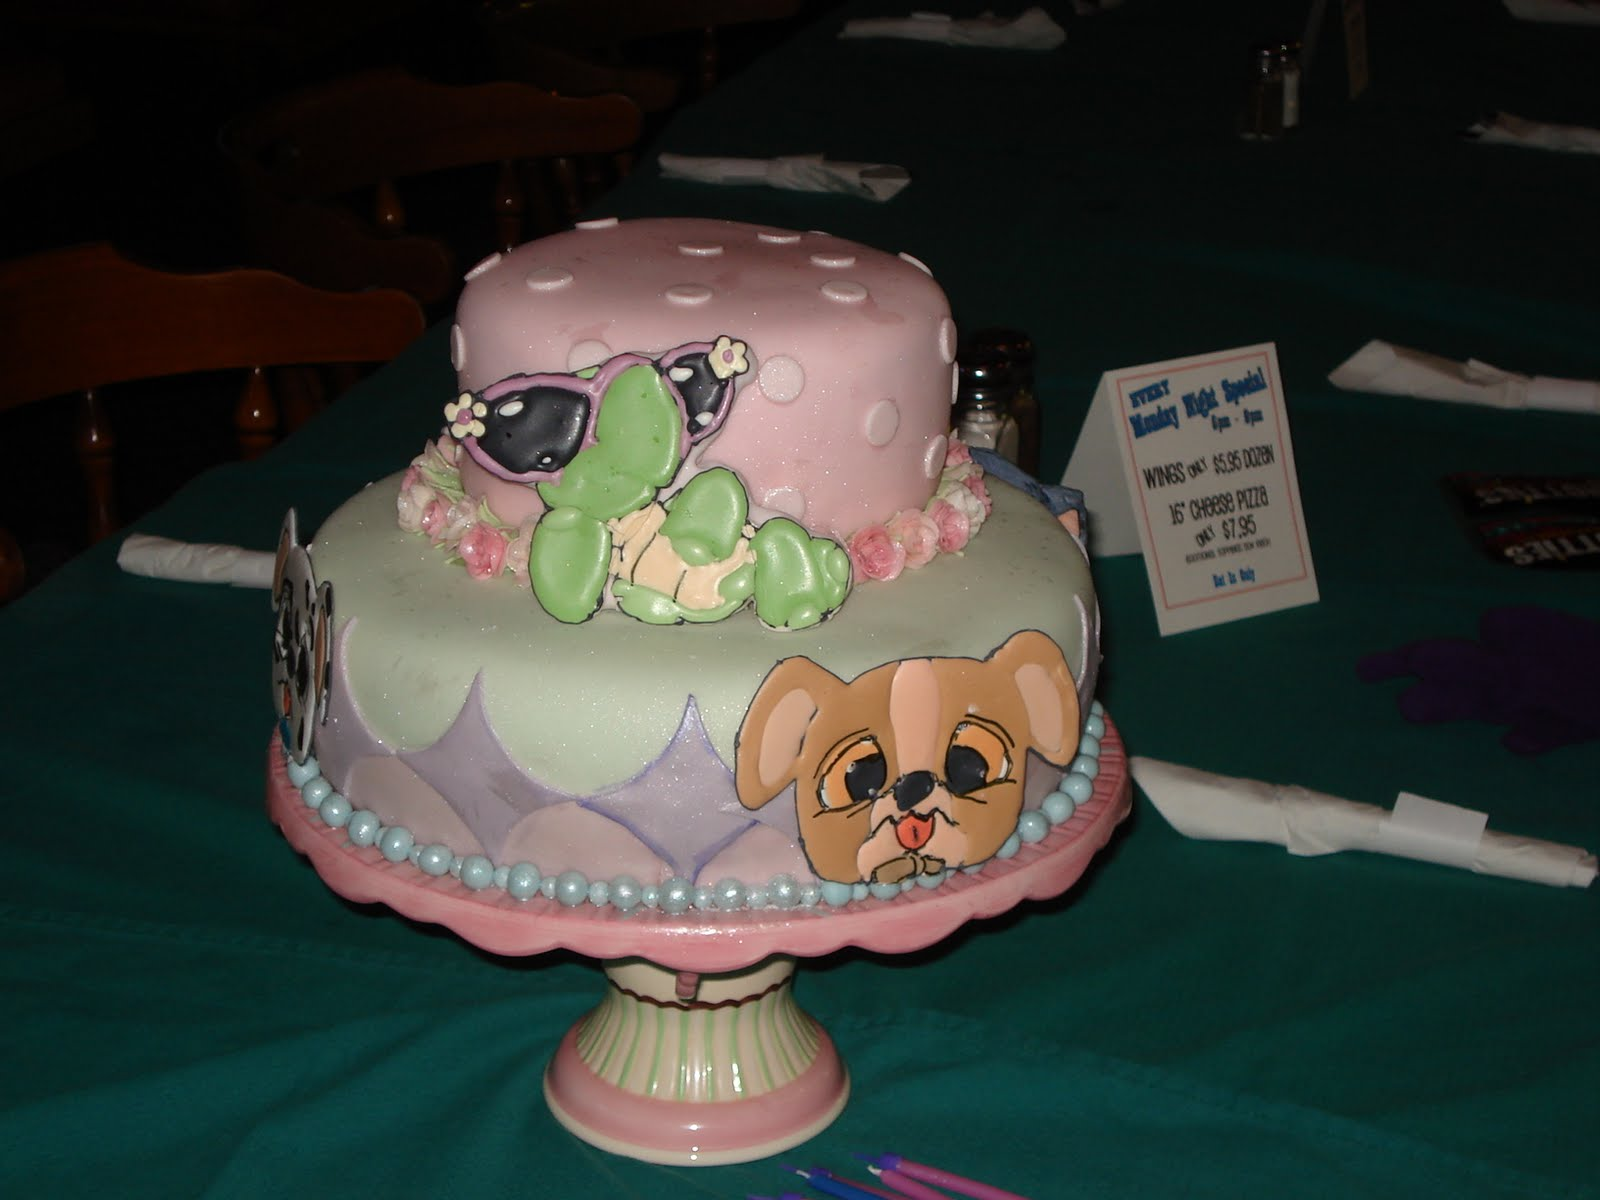 070cd8c2c1 ... we were able to arrive on time with a complete Littlest Pet shop themed  cake! Our little girl was thrilled and happy and everyone loved the cake.